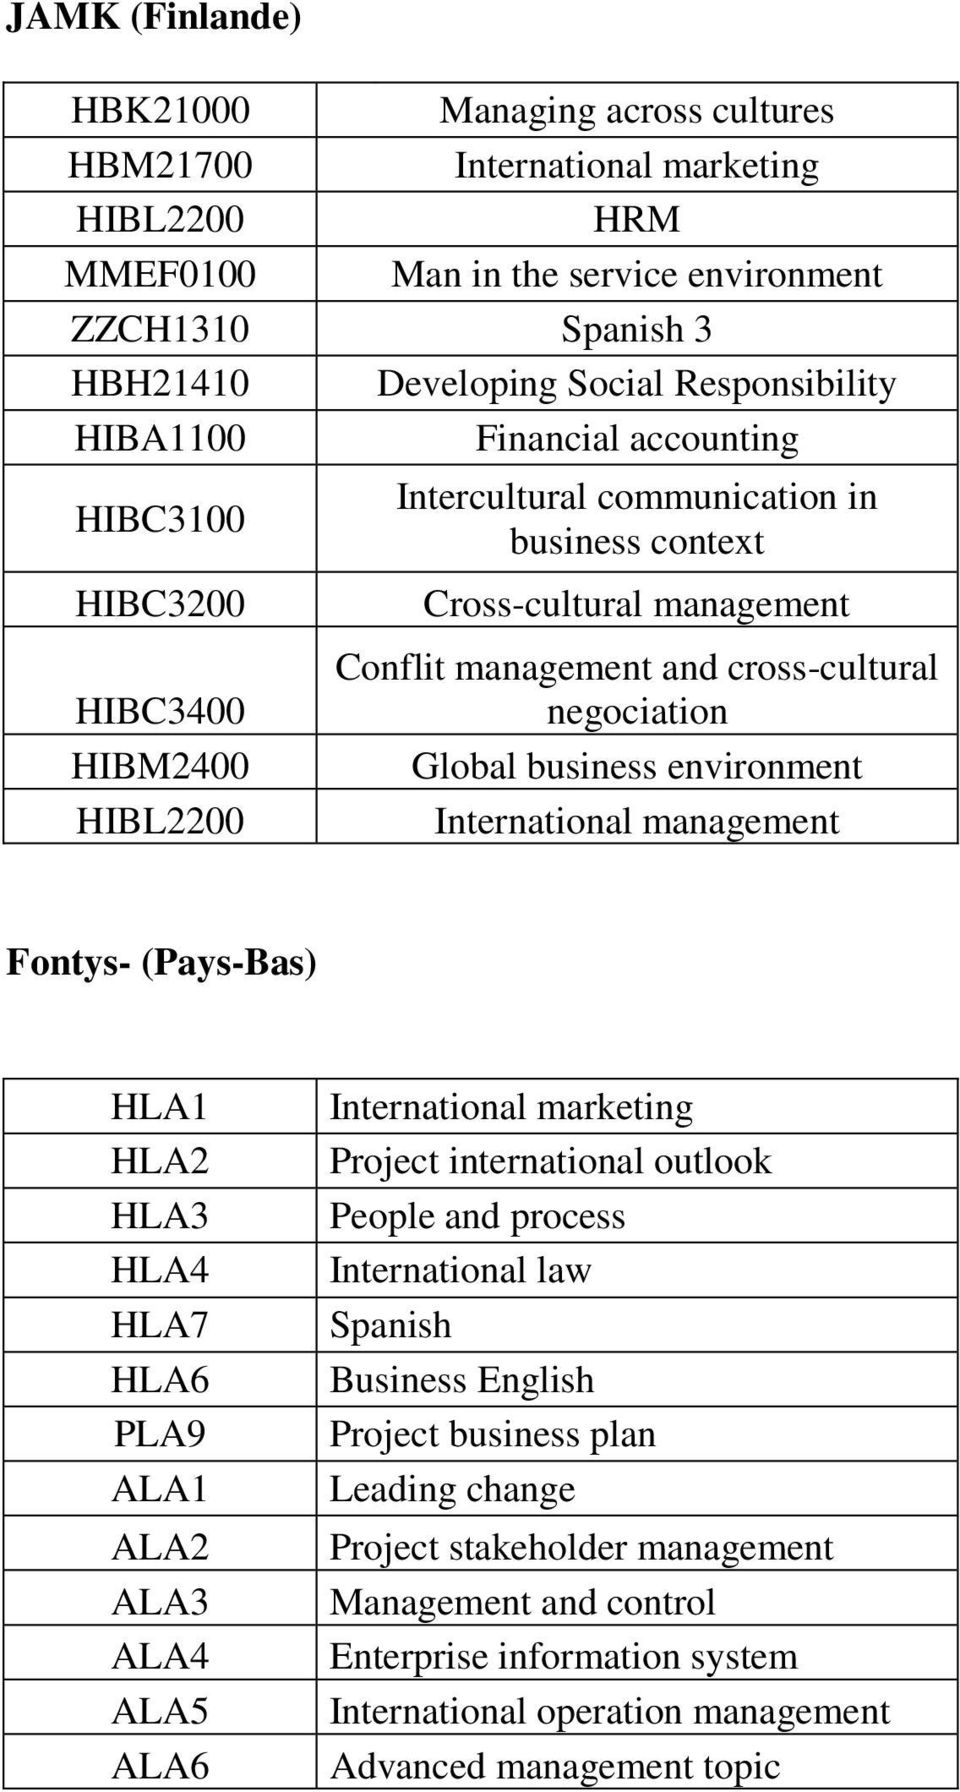 environment International management Fontys- (Pays-Bas) HLA1 HLA2 HLA3 HLA4 HLA7 HLA6 PLA9 ALA1 ALA2 ALA3 ALA4 ALA5 ALA6 Project international outlook People and process International law Spanish